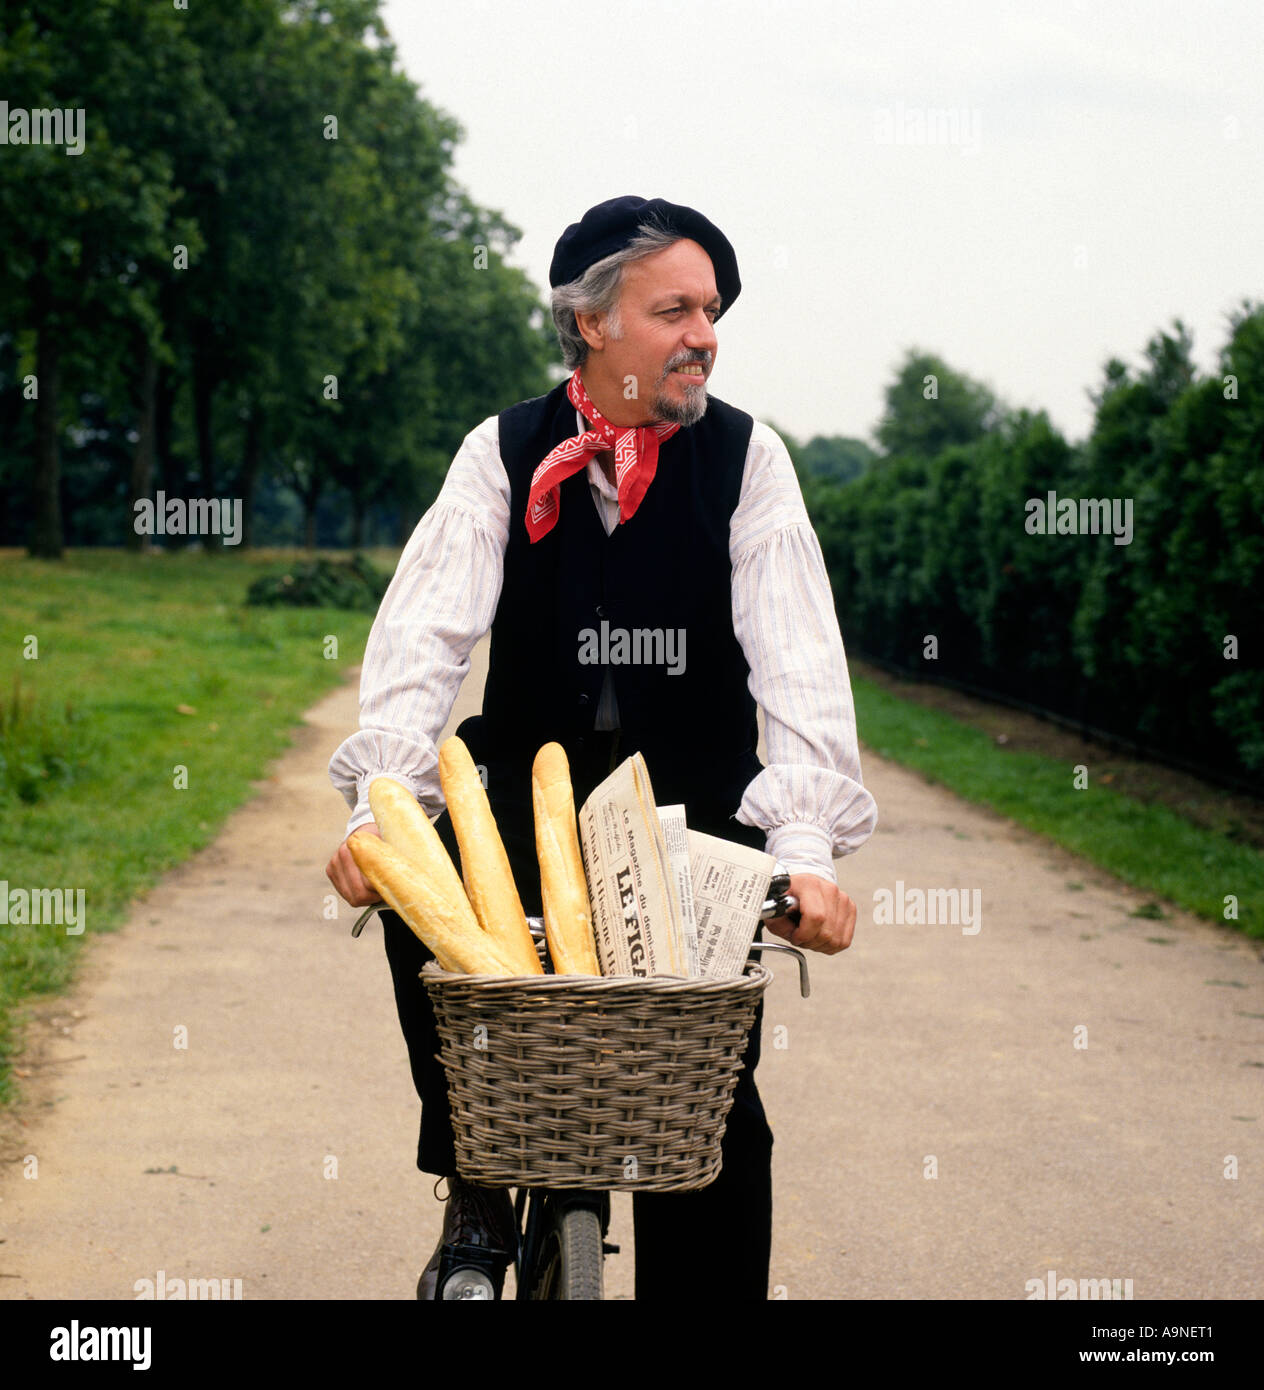 Frenchman cycling down country lane with French Bread Baguettes and Newspaper - Stock Image